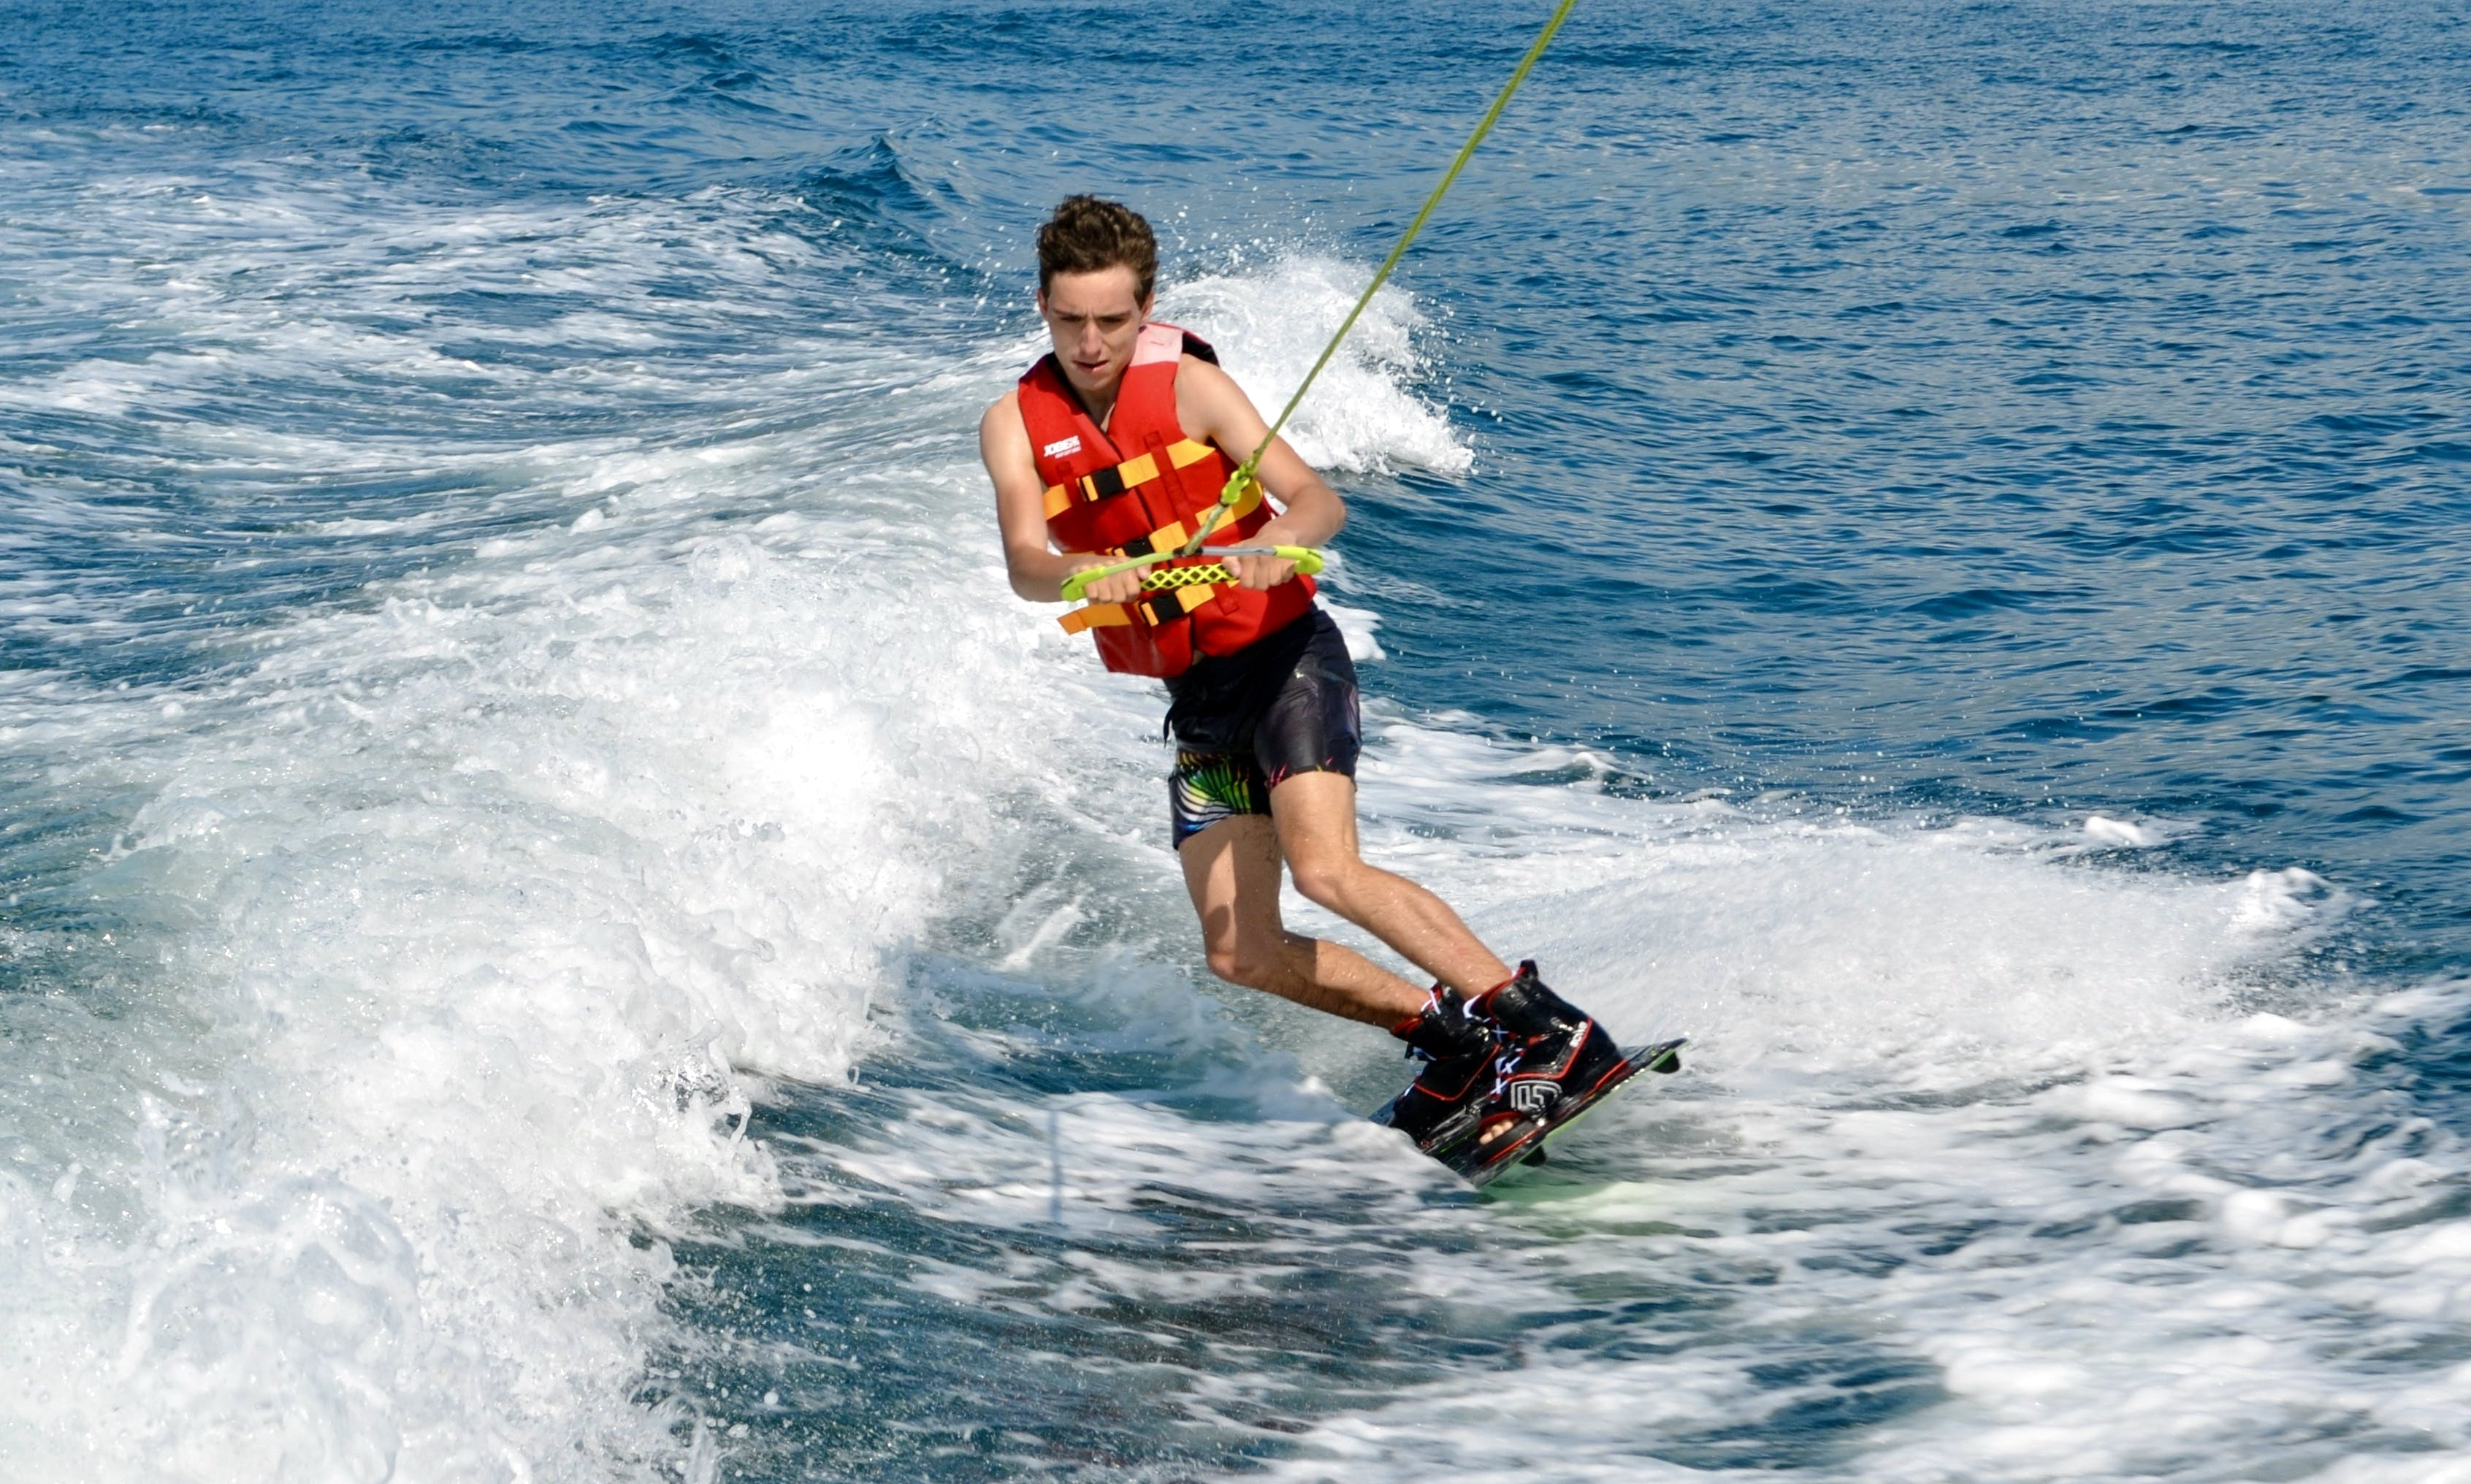 Enjoy An Exhilarating Hours of Wakeboarding In Saint-Tropez, France